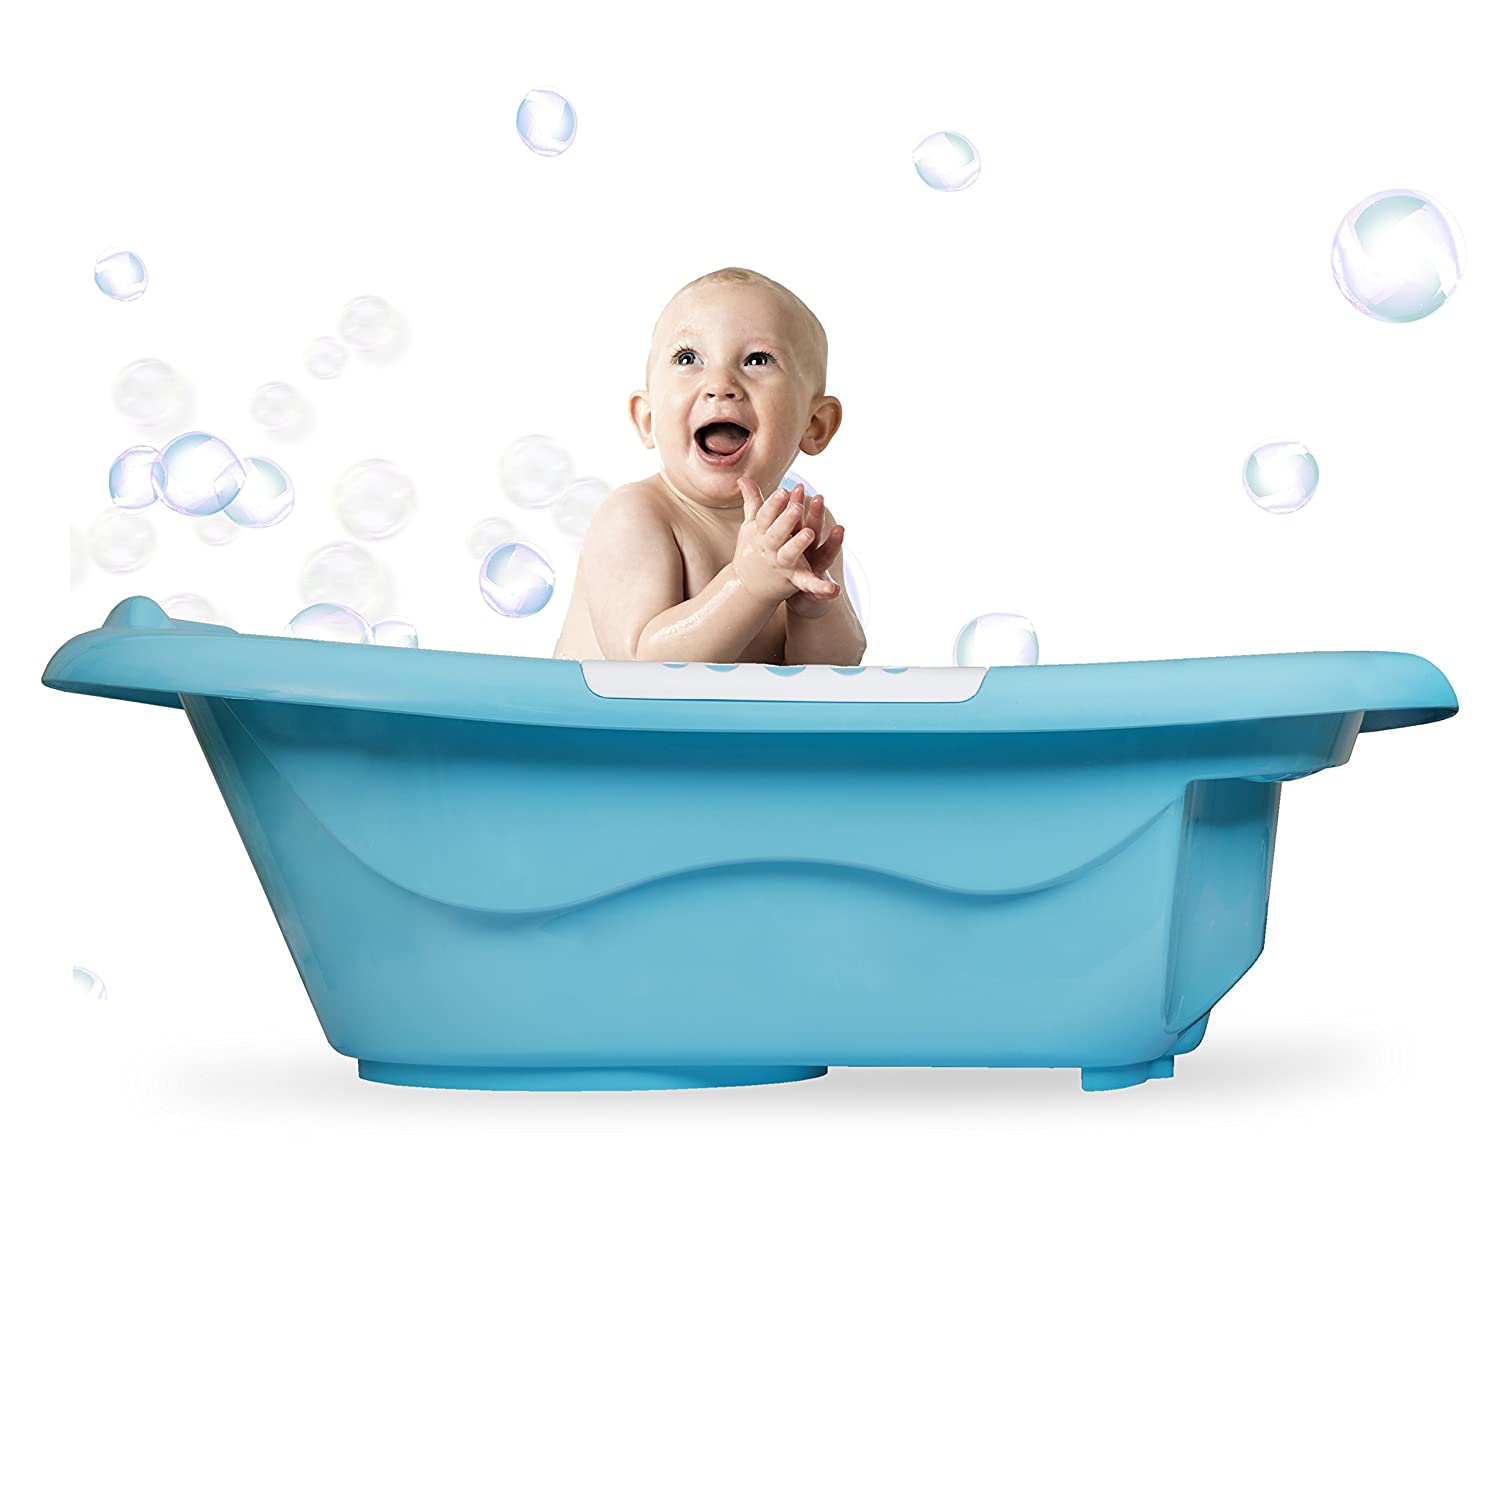 Amazon.com : Best Baby Bath Tub and Toddler Infant Bath Large Made ...